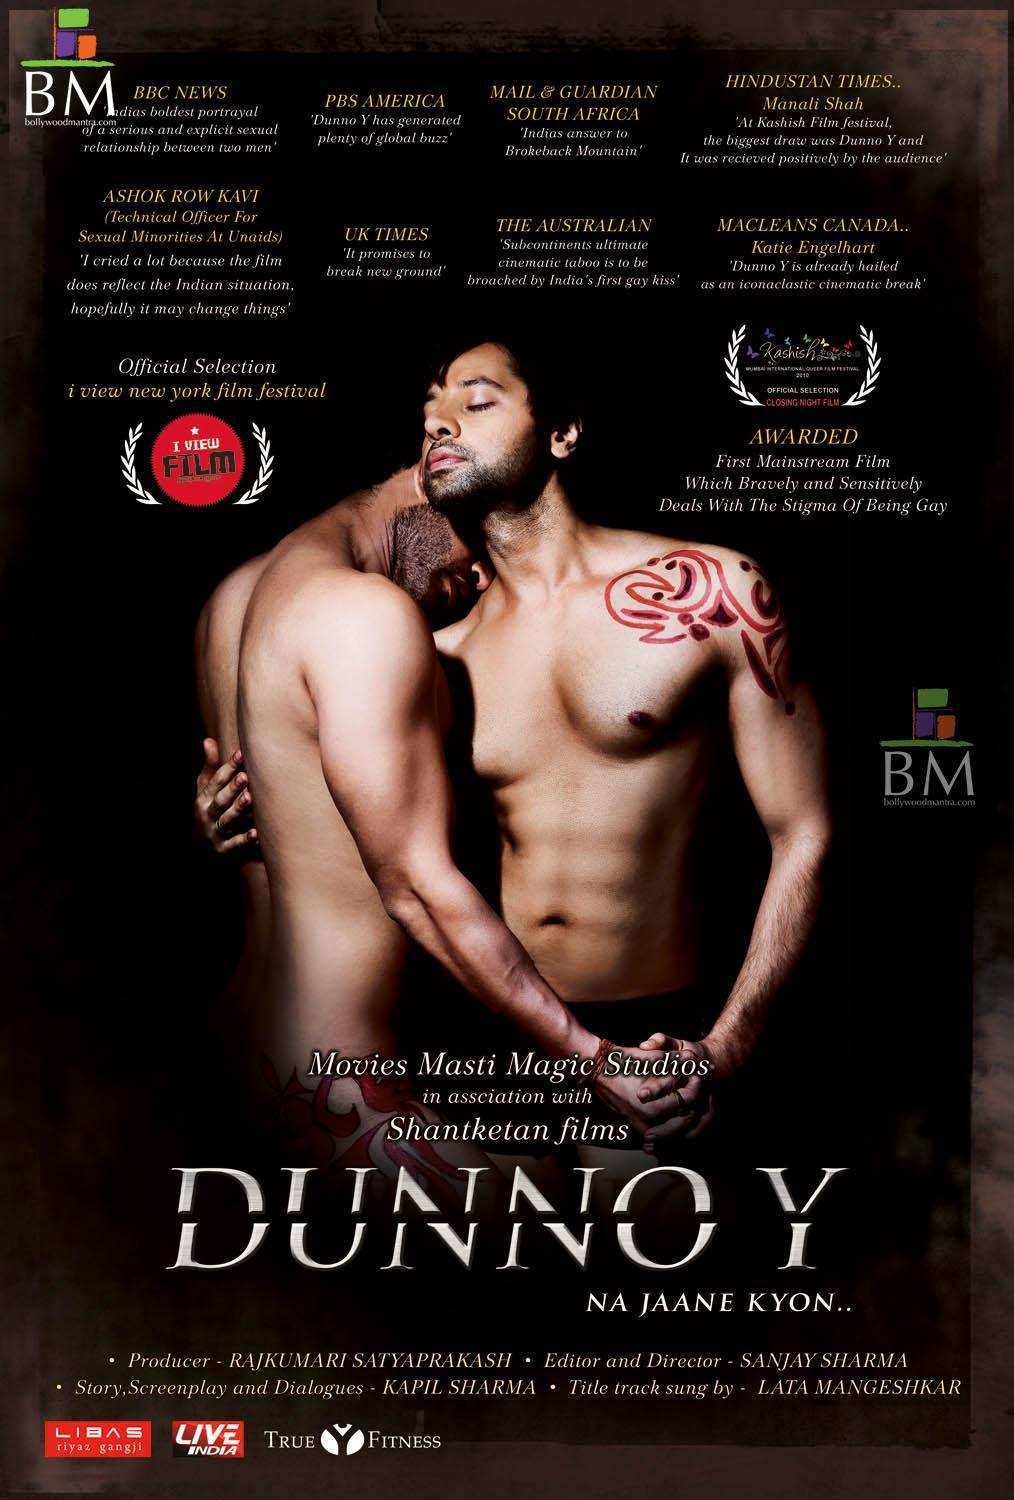 Movie poster for first Bollywood gay film 'Dunno Y Na Jaane Kyon'